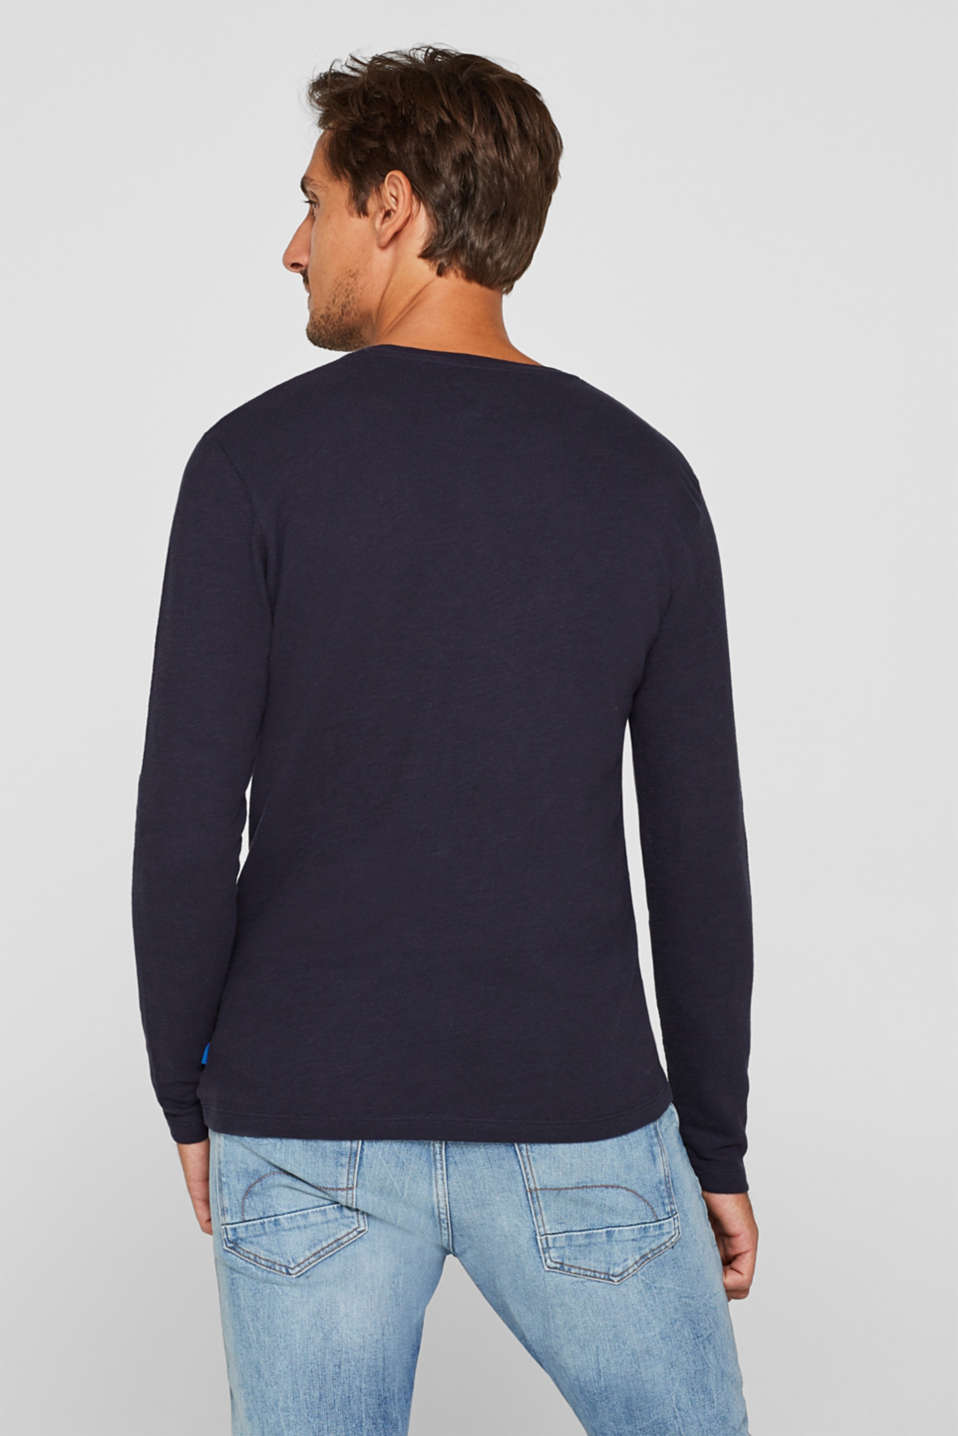 Jersey long sleeve top with stripes, NAVY, detail image number 3